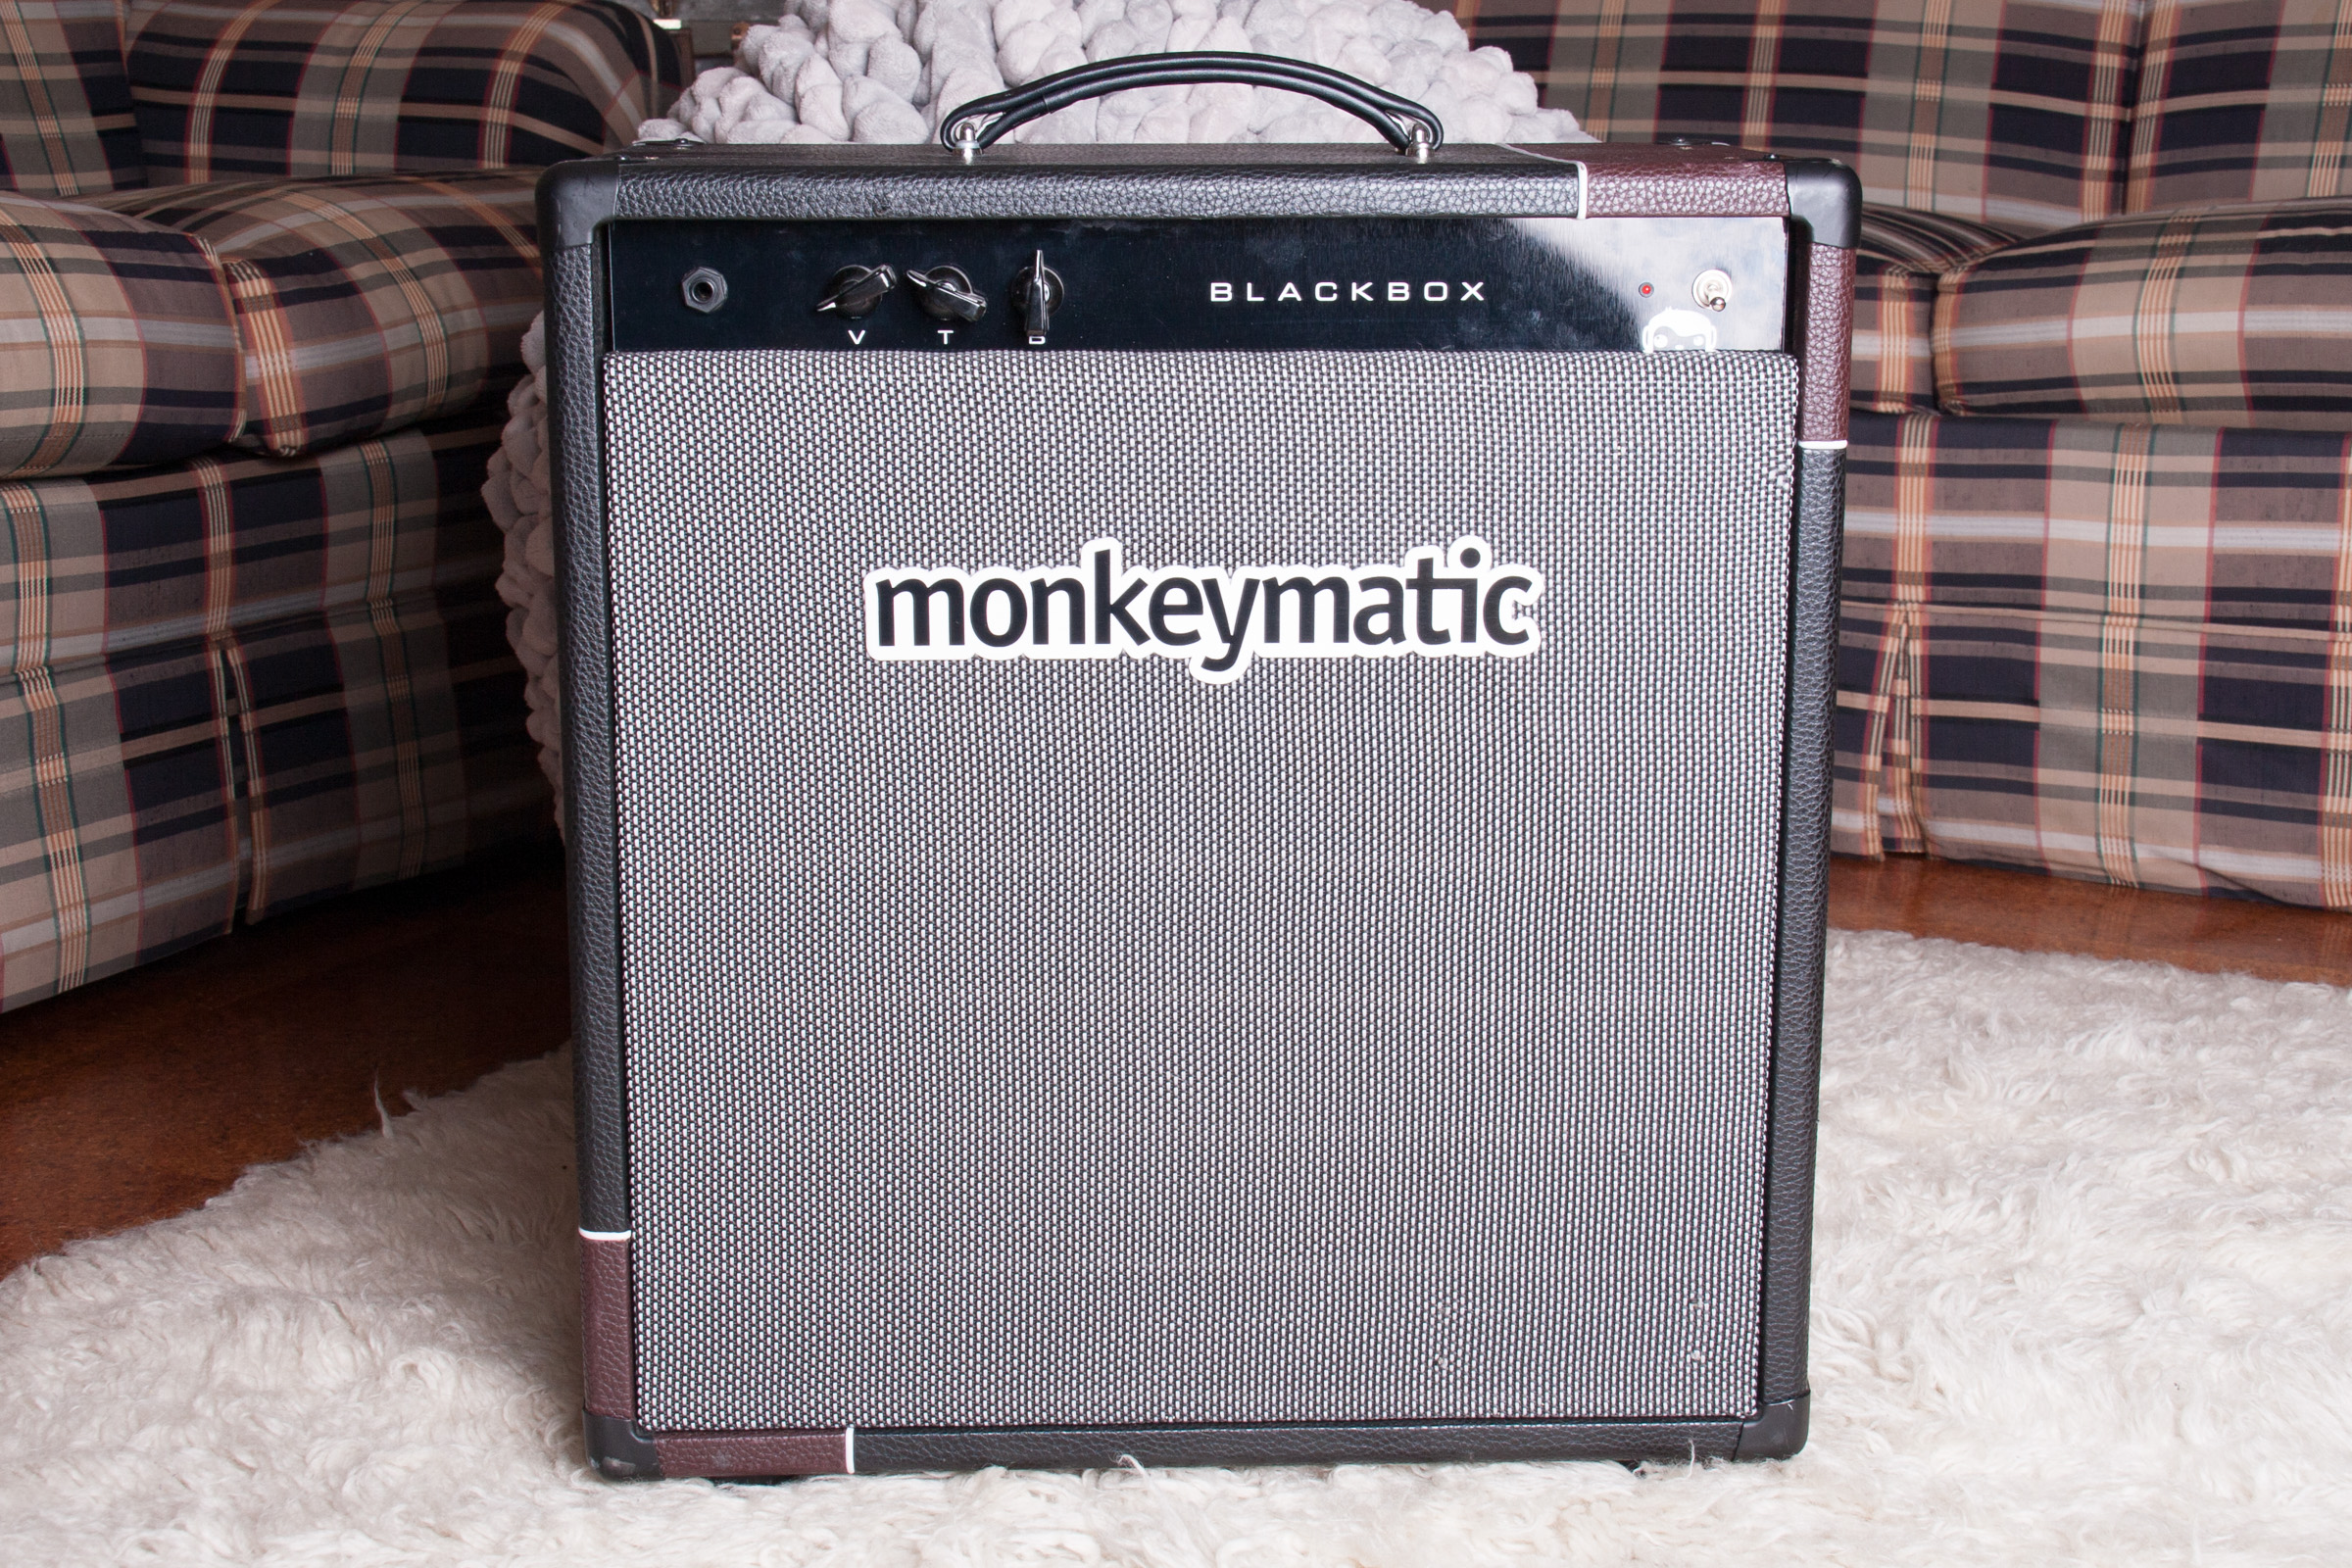 monkeymatic_blackbox-2.jpg